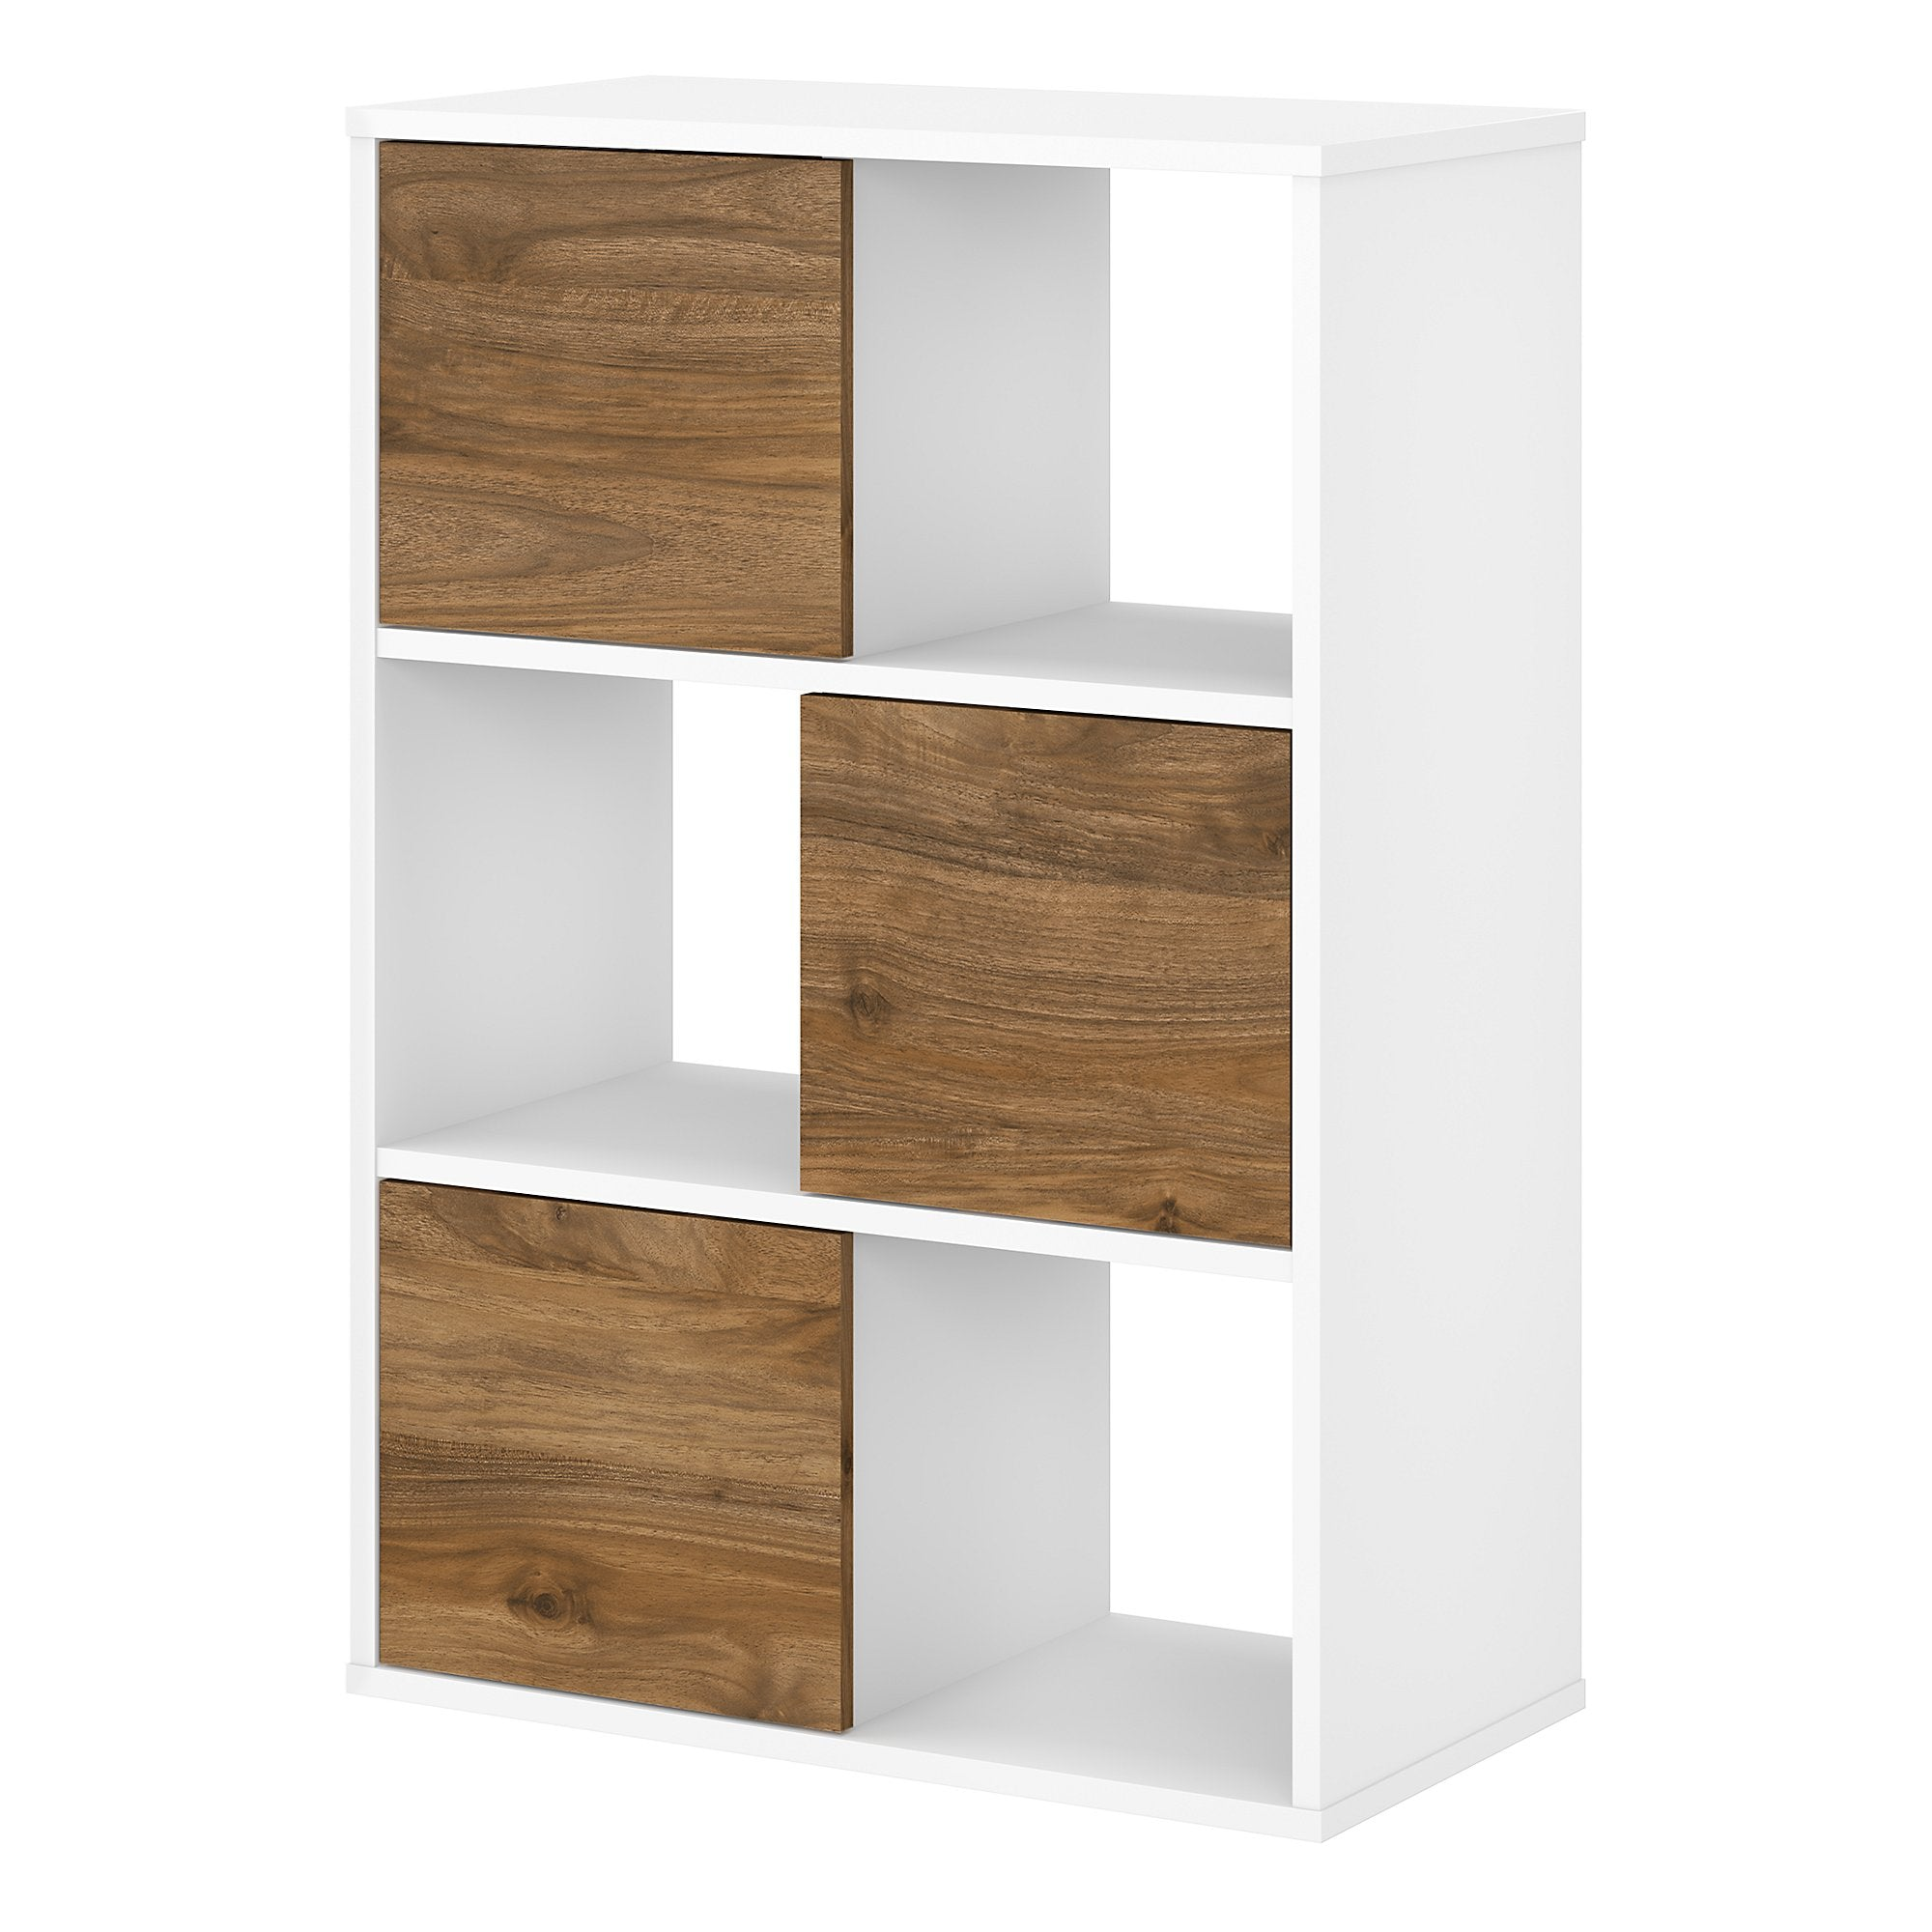 Bush Business Furniture Jamestown 6 Cube Organizer -Fresh Walnut/White